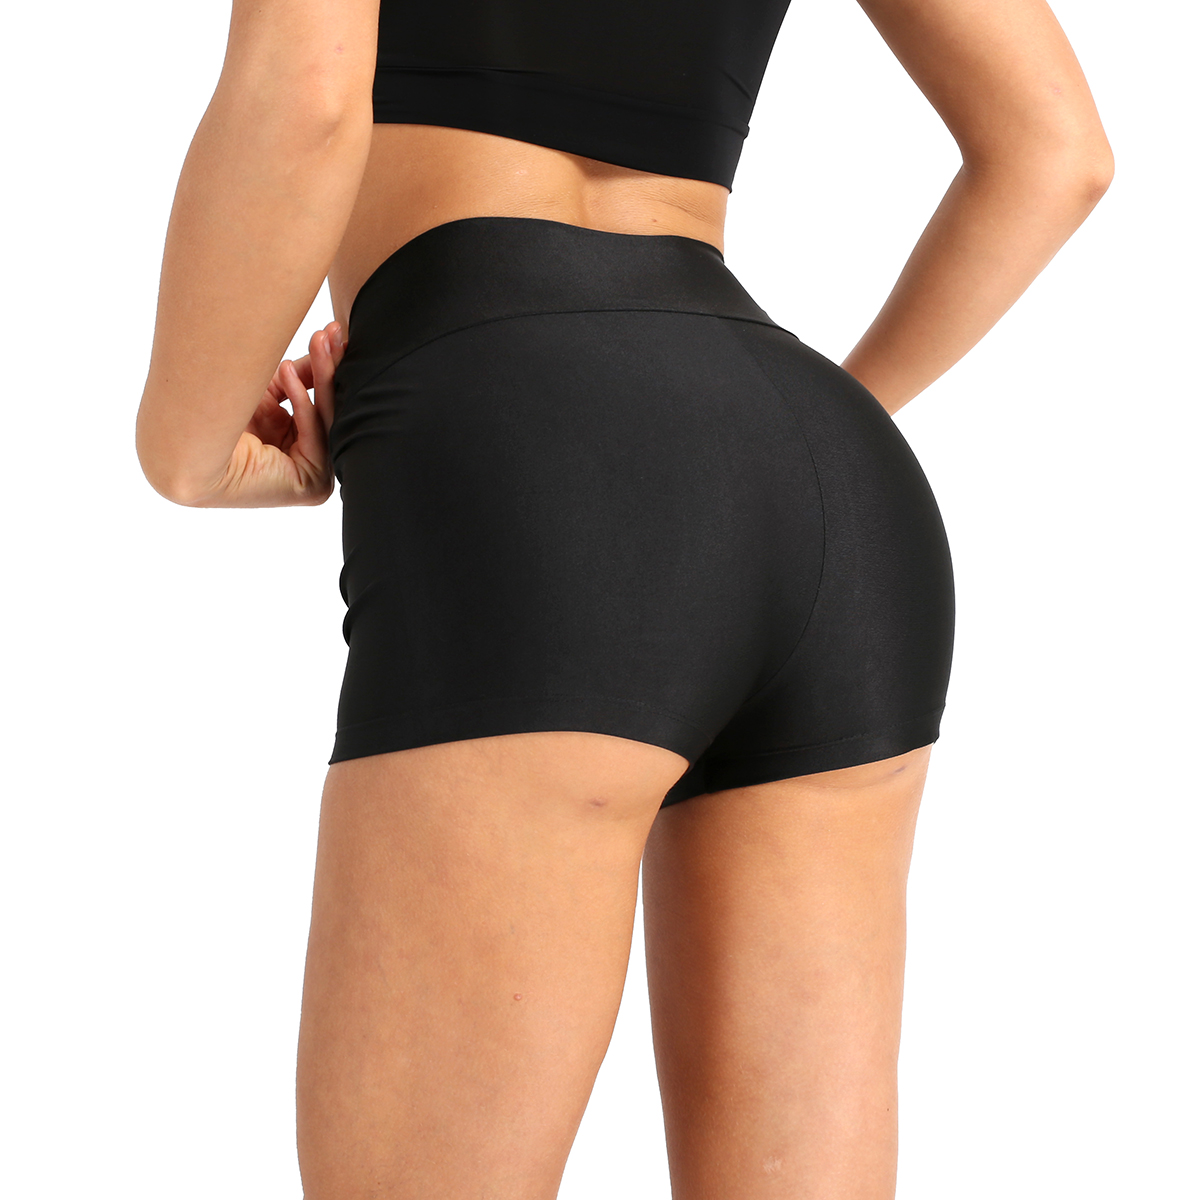 ChicTry Women High Waist Stretchy Solid Color Dance Shorts Adult Yoga Sports Casual Shorts Ballet Gymnastics Shorts Dance Wear